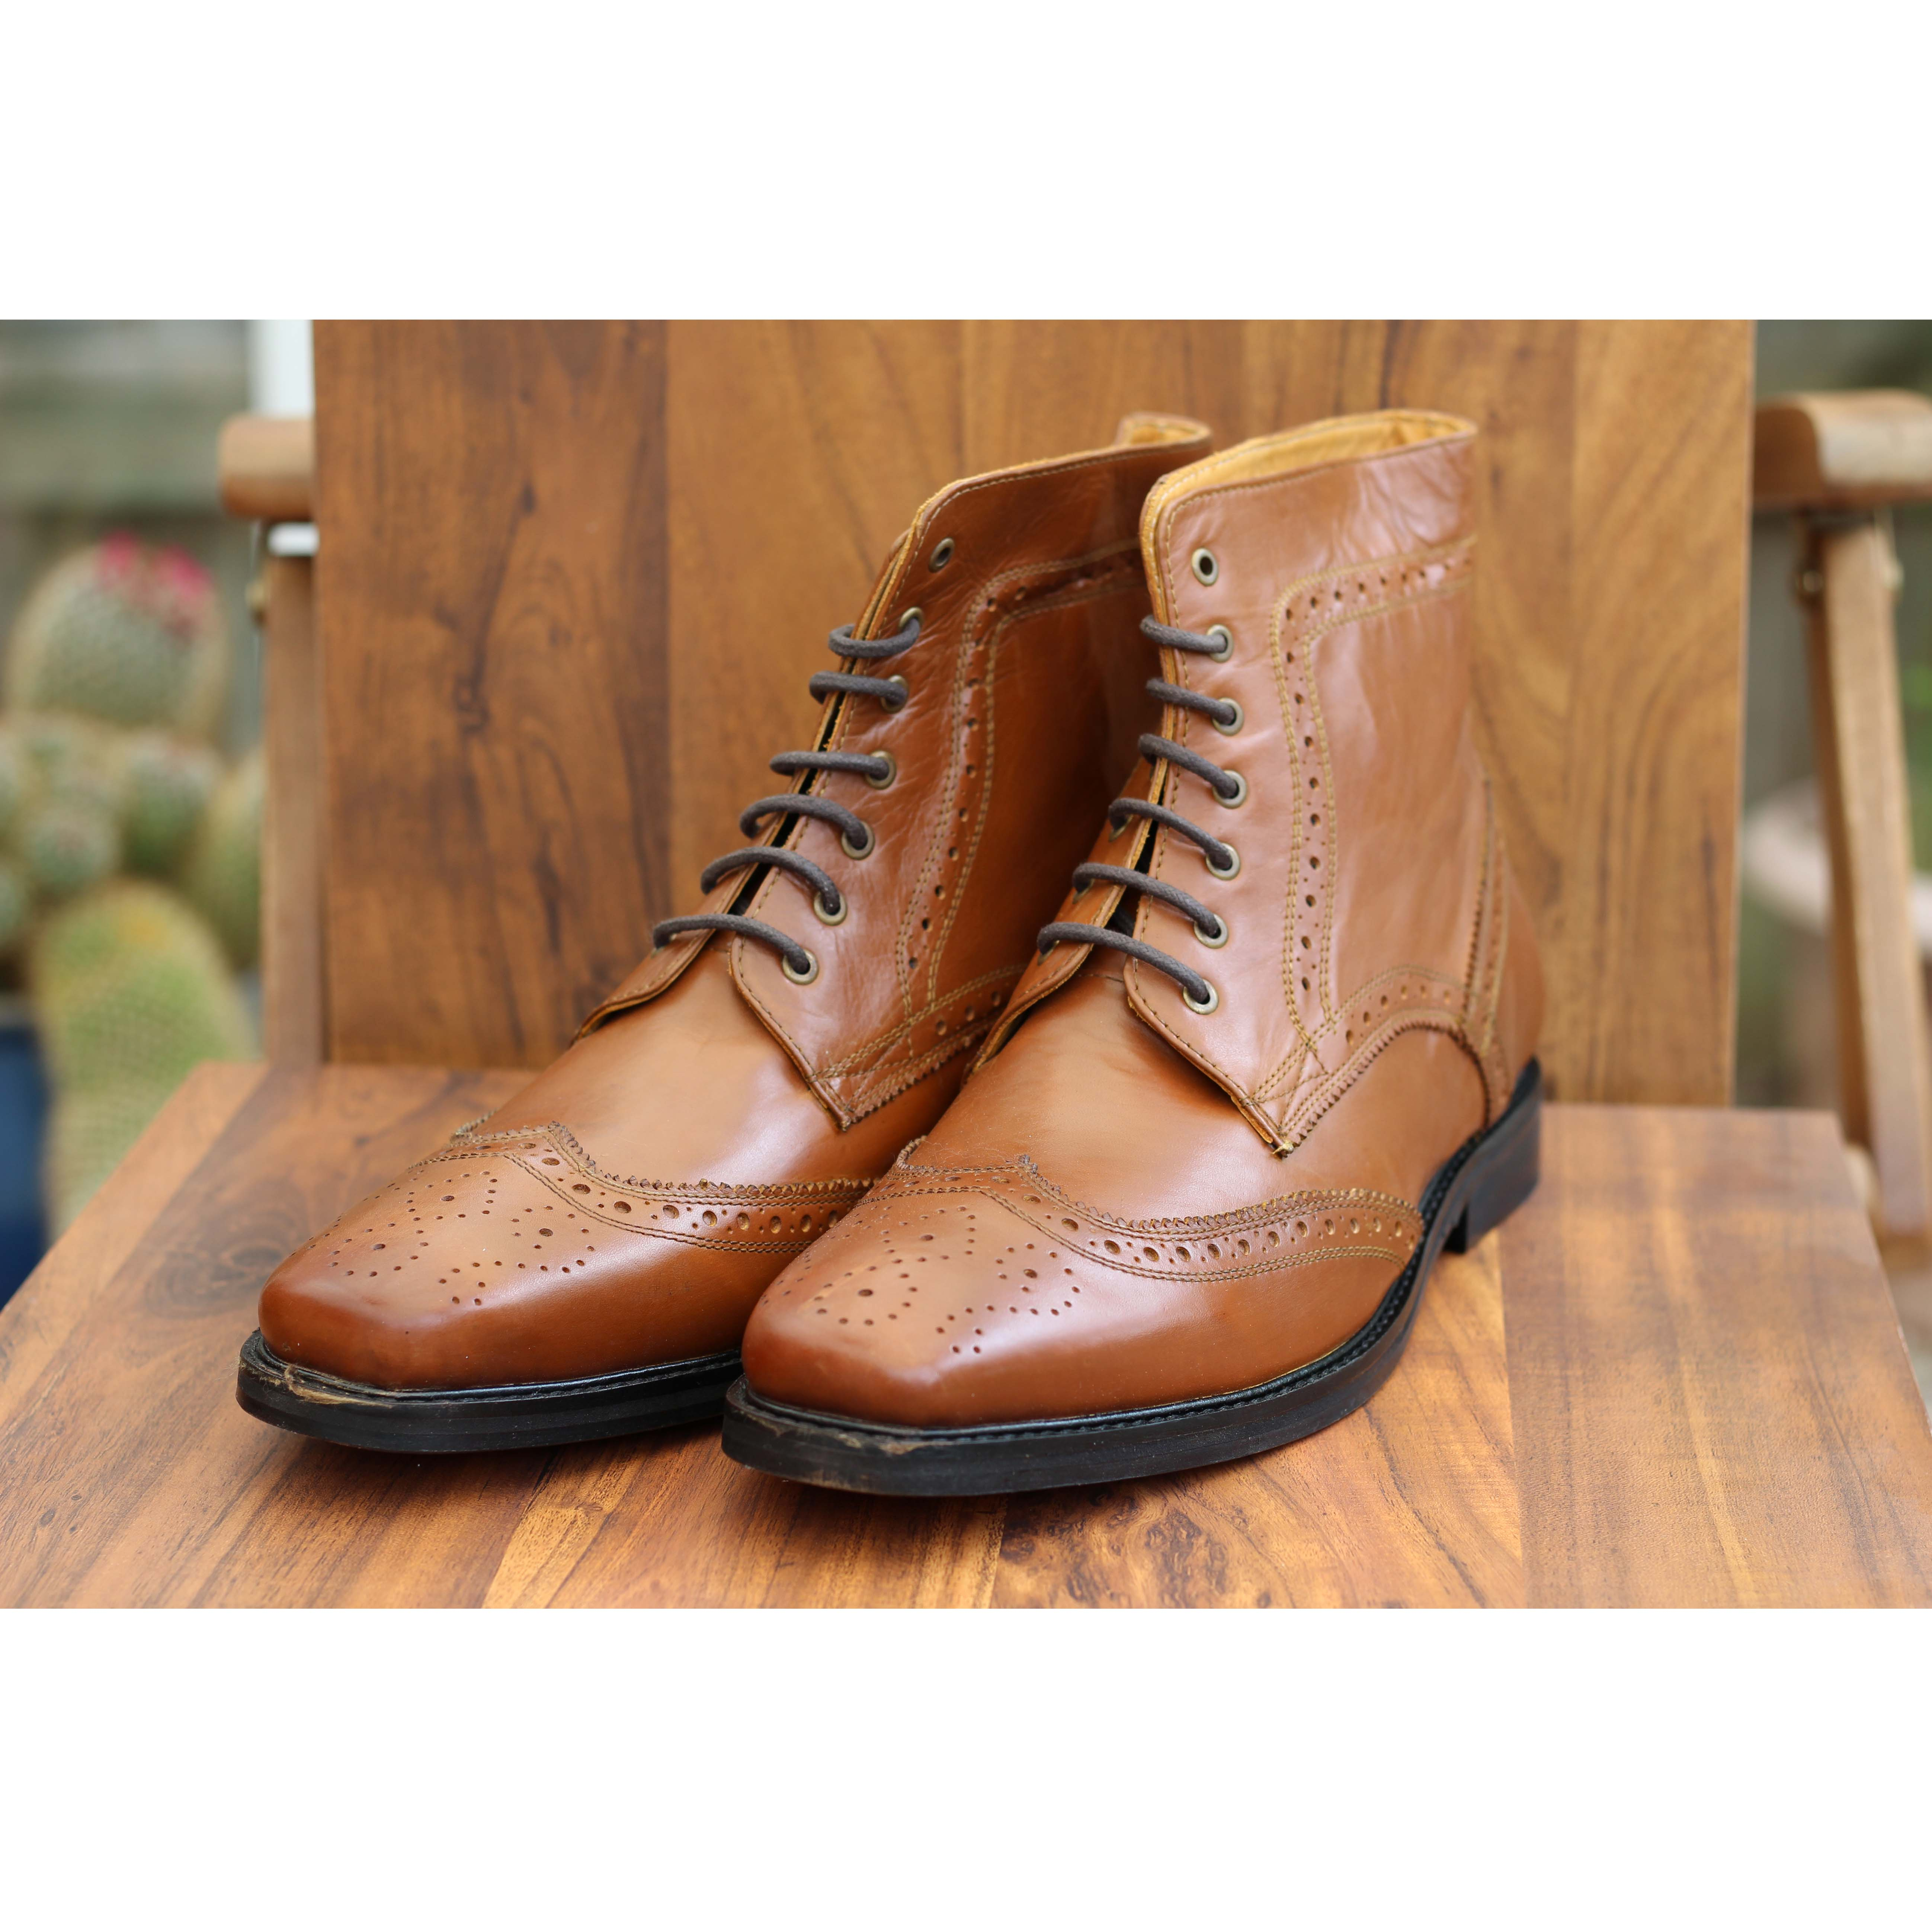 Delicious Junction Landslide Tan Boot Mod Skin Northern Soul